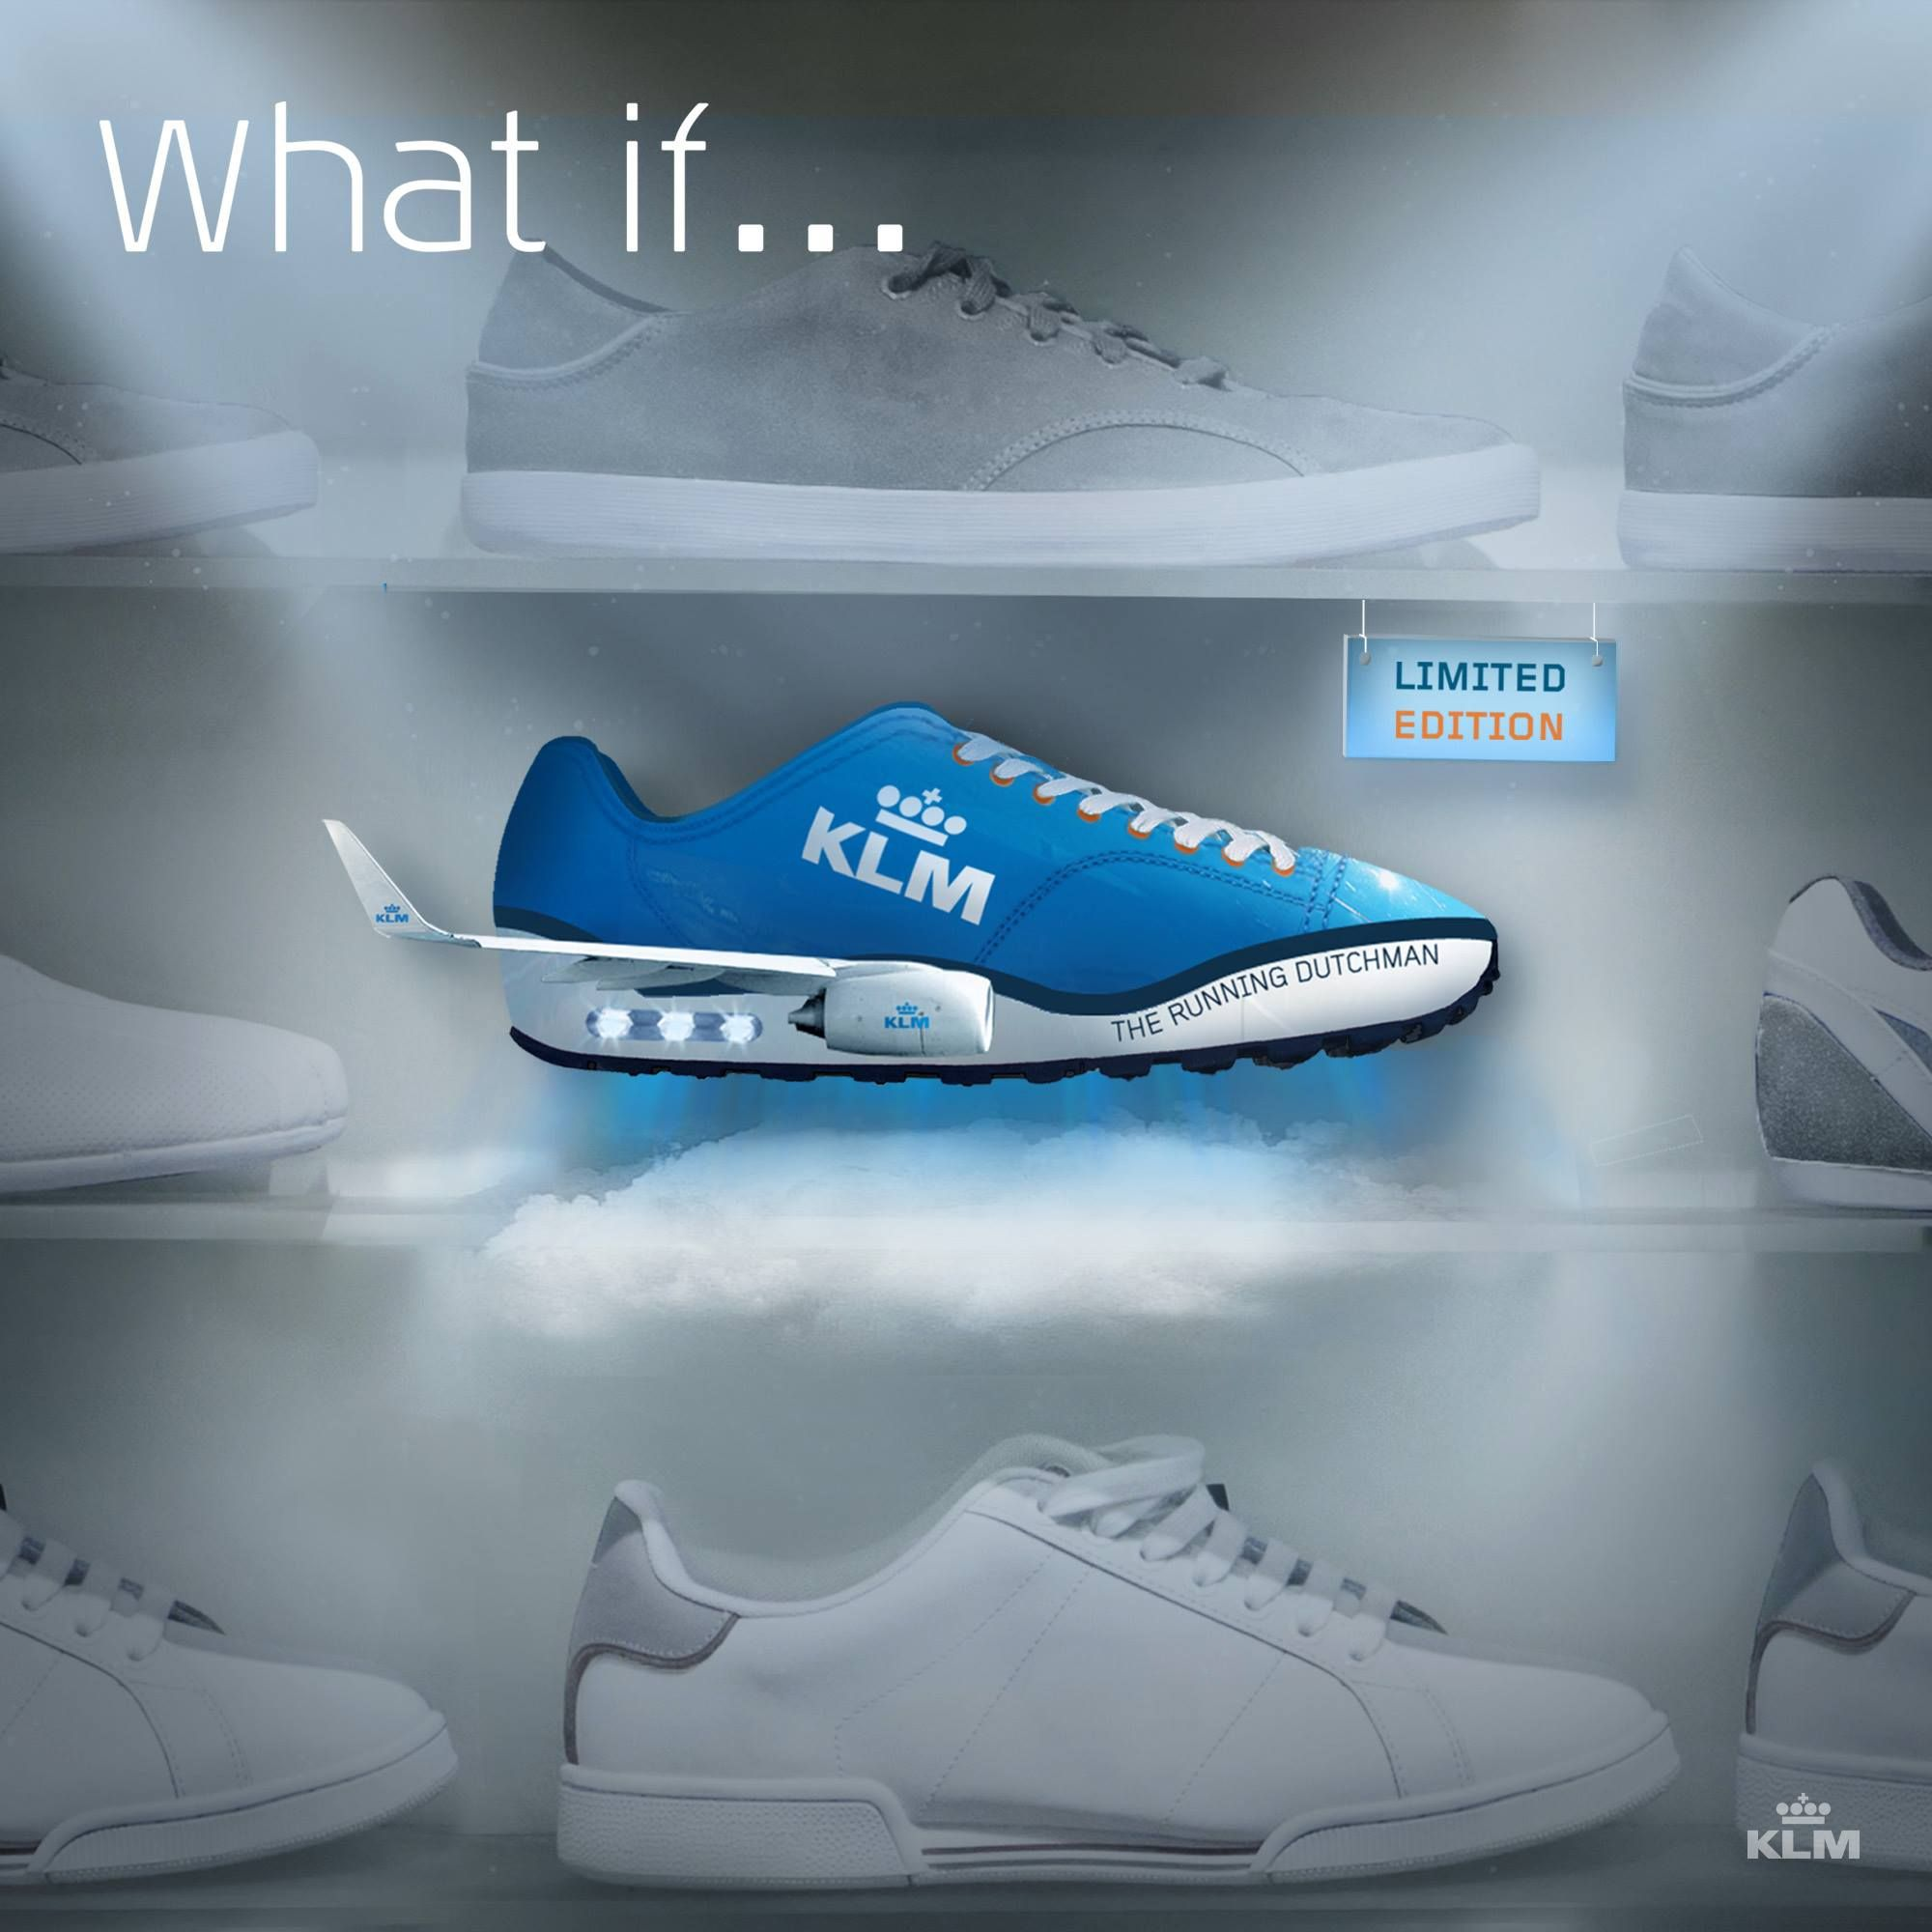 best service 43ea7 0bc22 Hi Nike! How about a running Dutchman, with a little bit of air